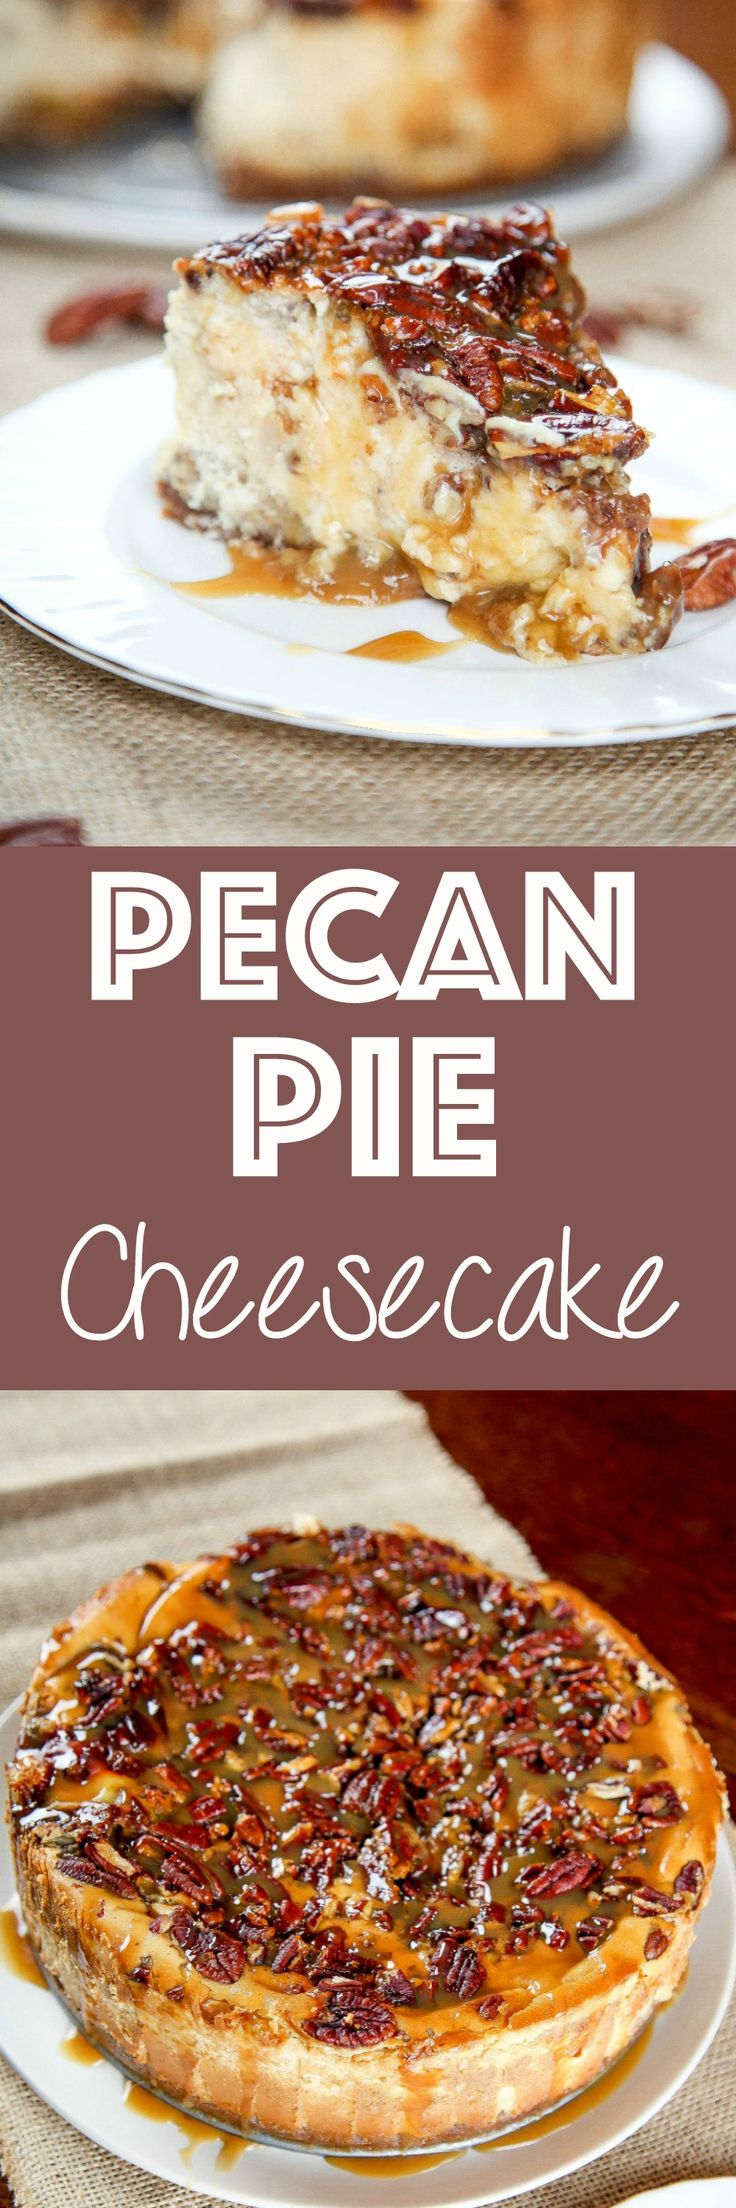 Pecan Pie Cheesecake: Creamy brown sugar cheesecake topped with a decadent pecan pie filling. Your favorite holiday pie, in cheesecake form!: